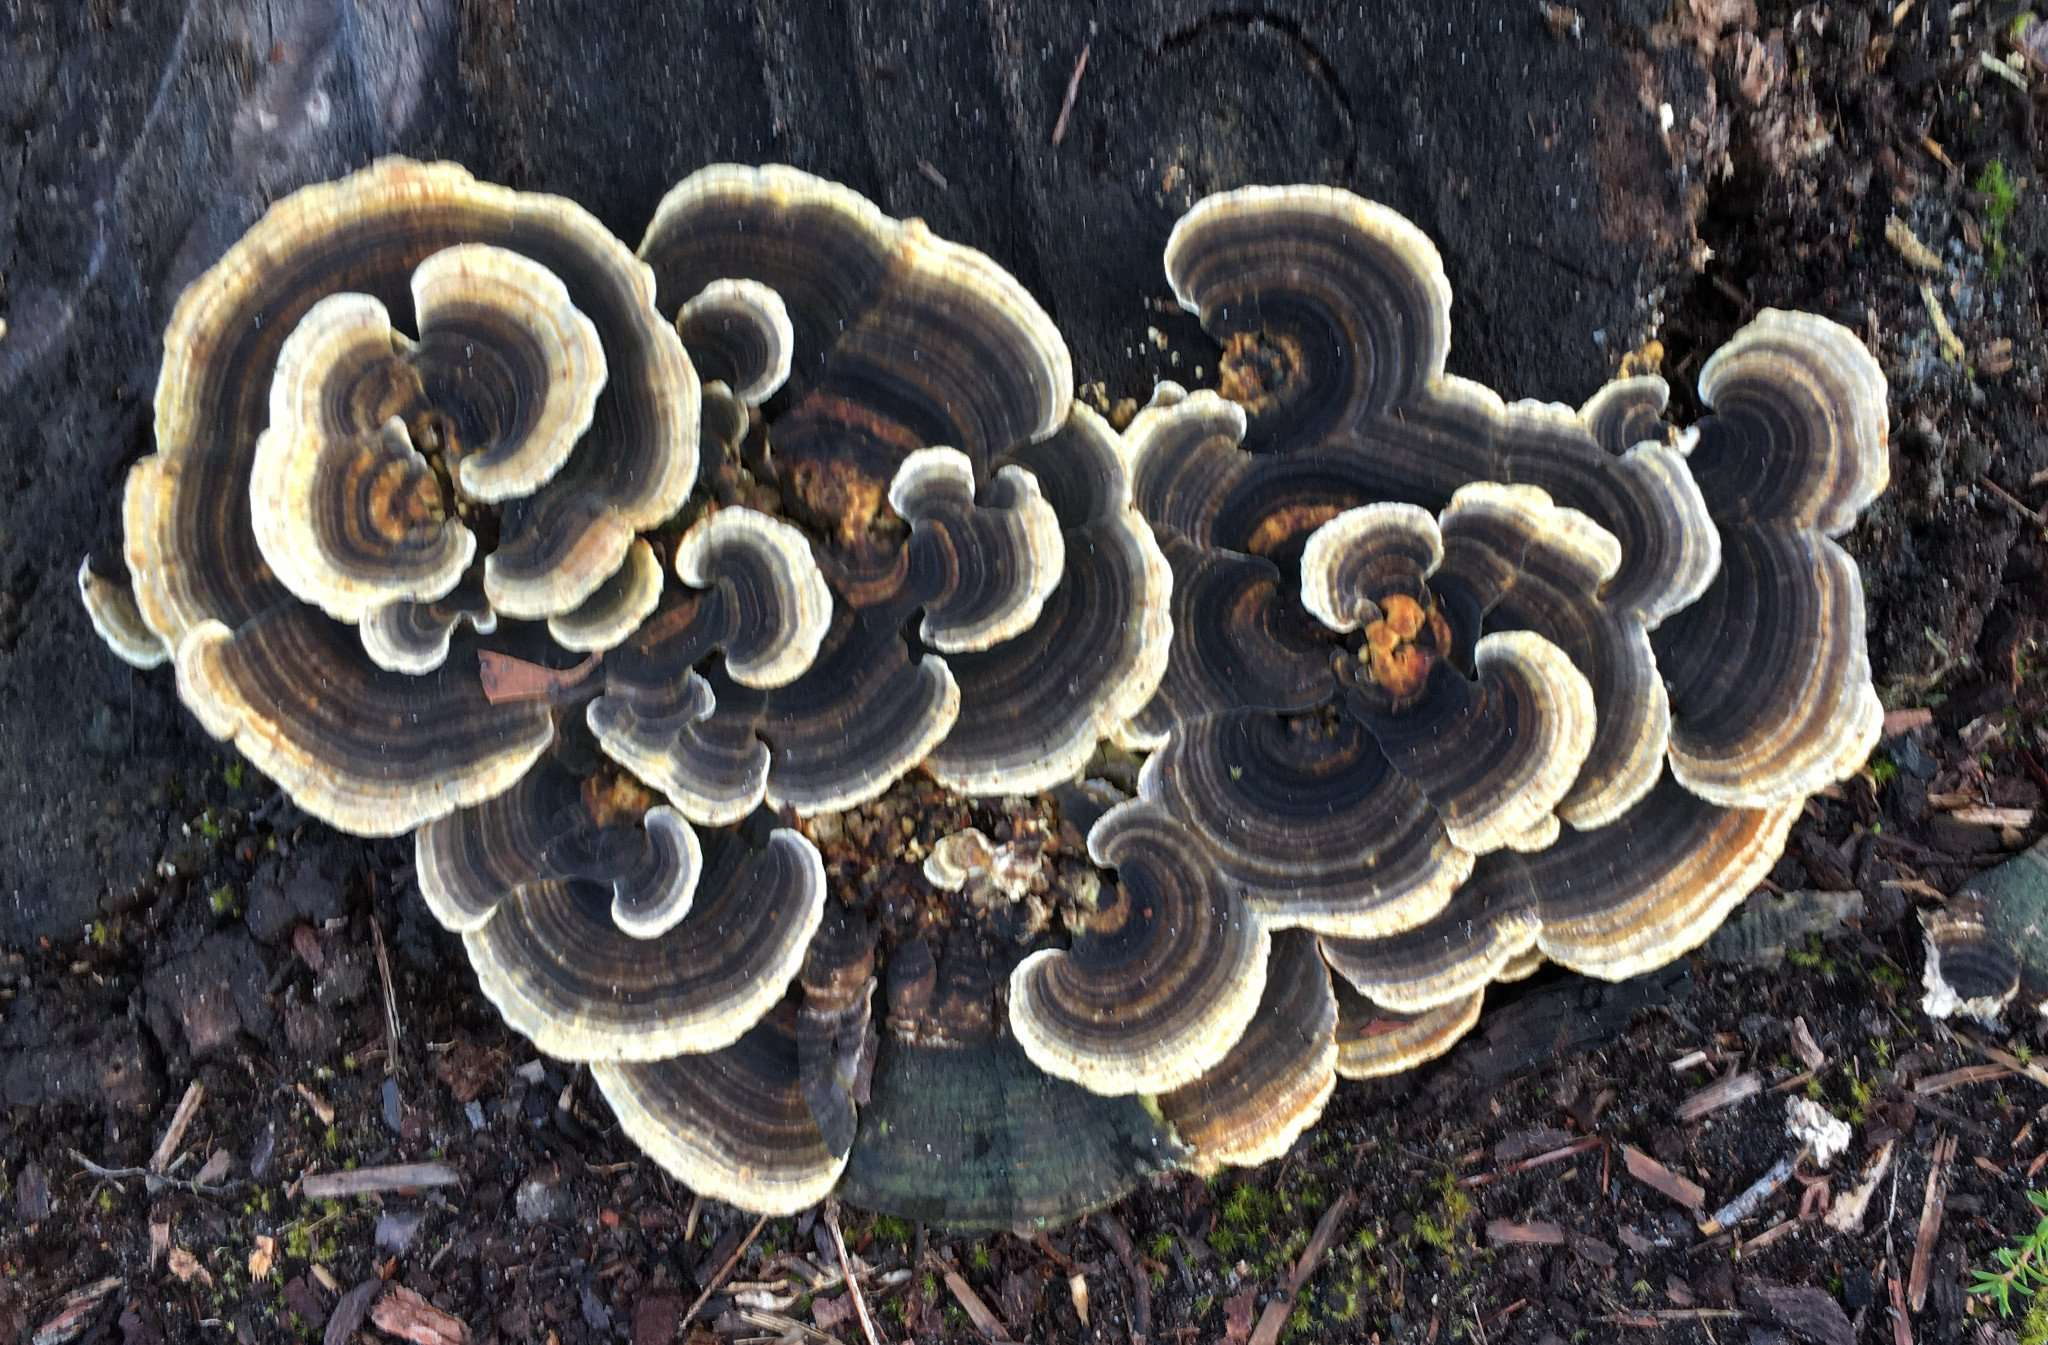 A photo of Turkey Tail fungus, taken by peter Hill. Mushrooms are an apt symbol for the Mycelium project by Southern Forest Arts